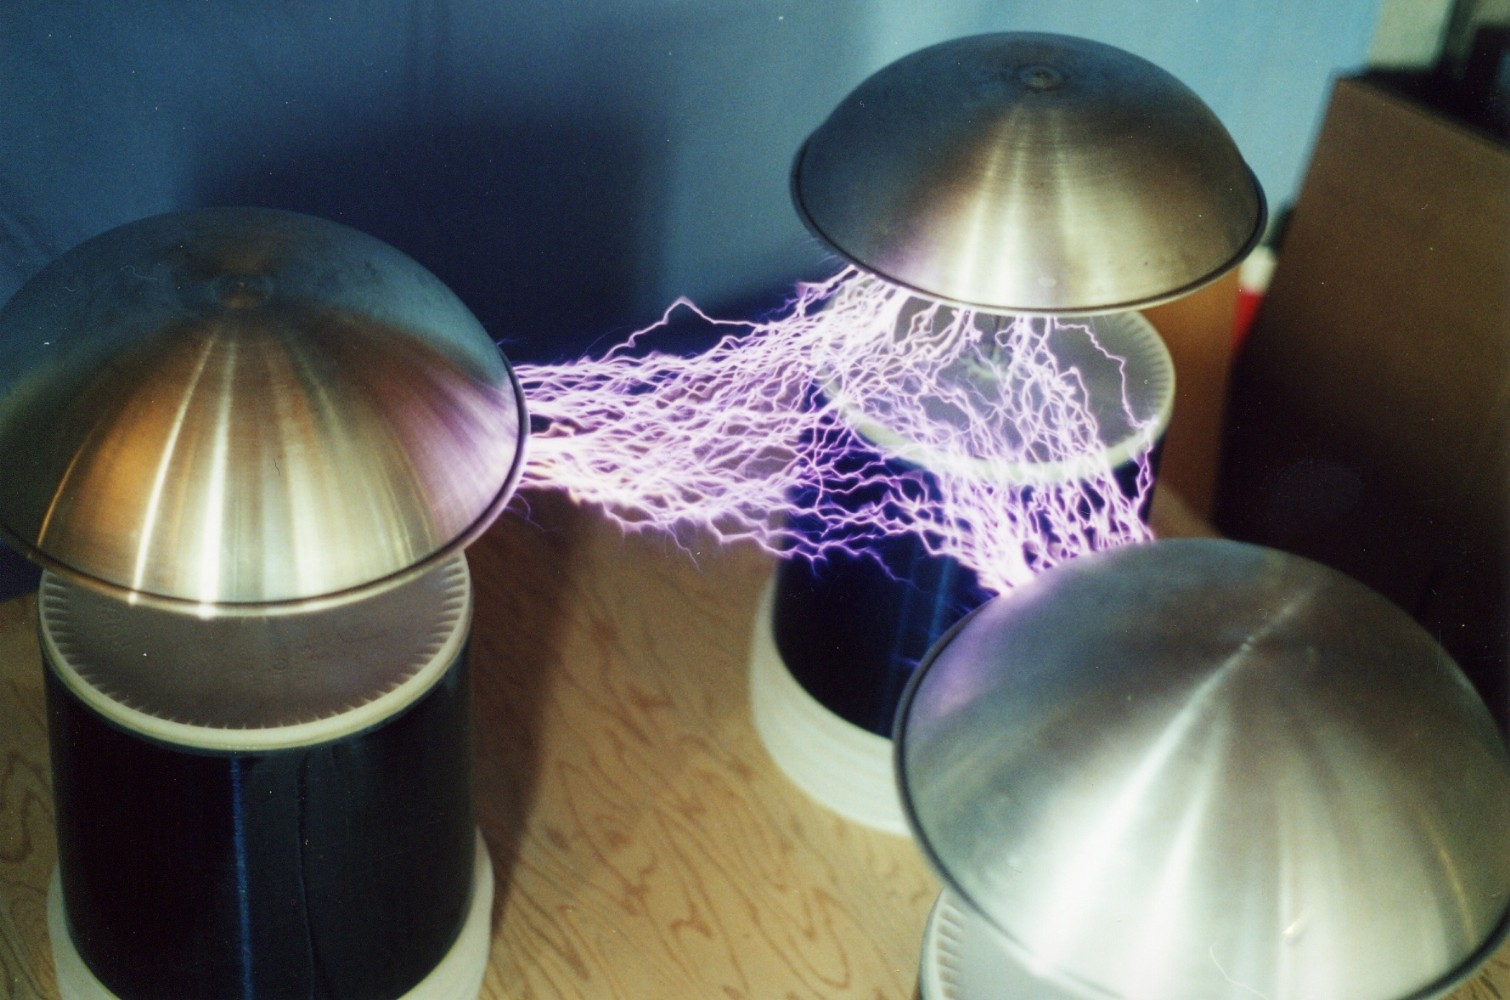 2000 3-phase Tesla coil system with 60 Hz half-wave rectified power - 3